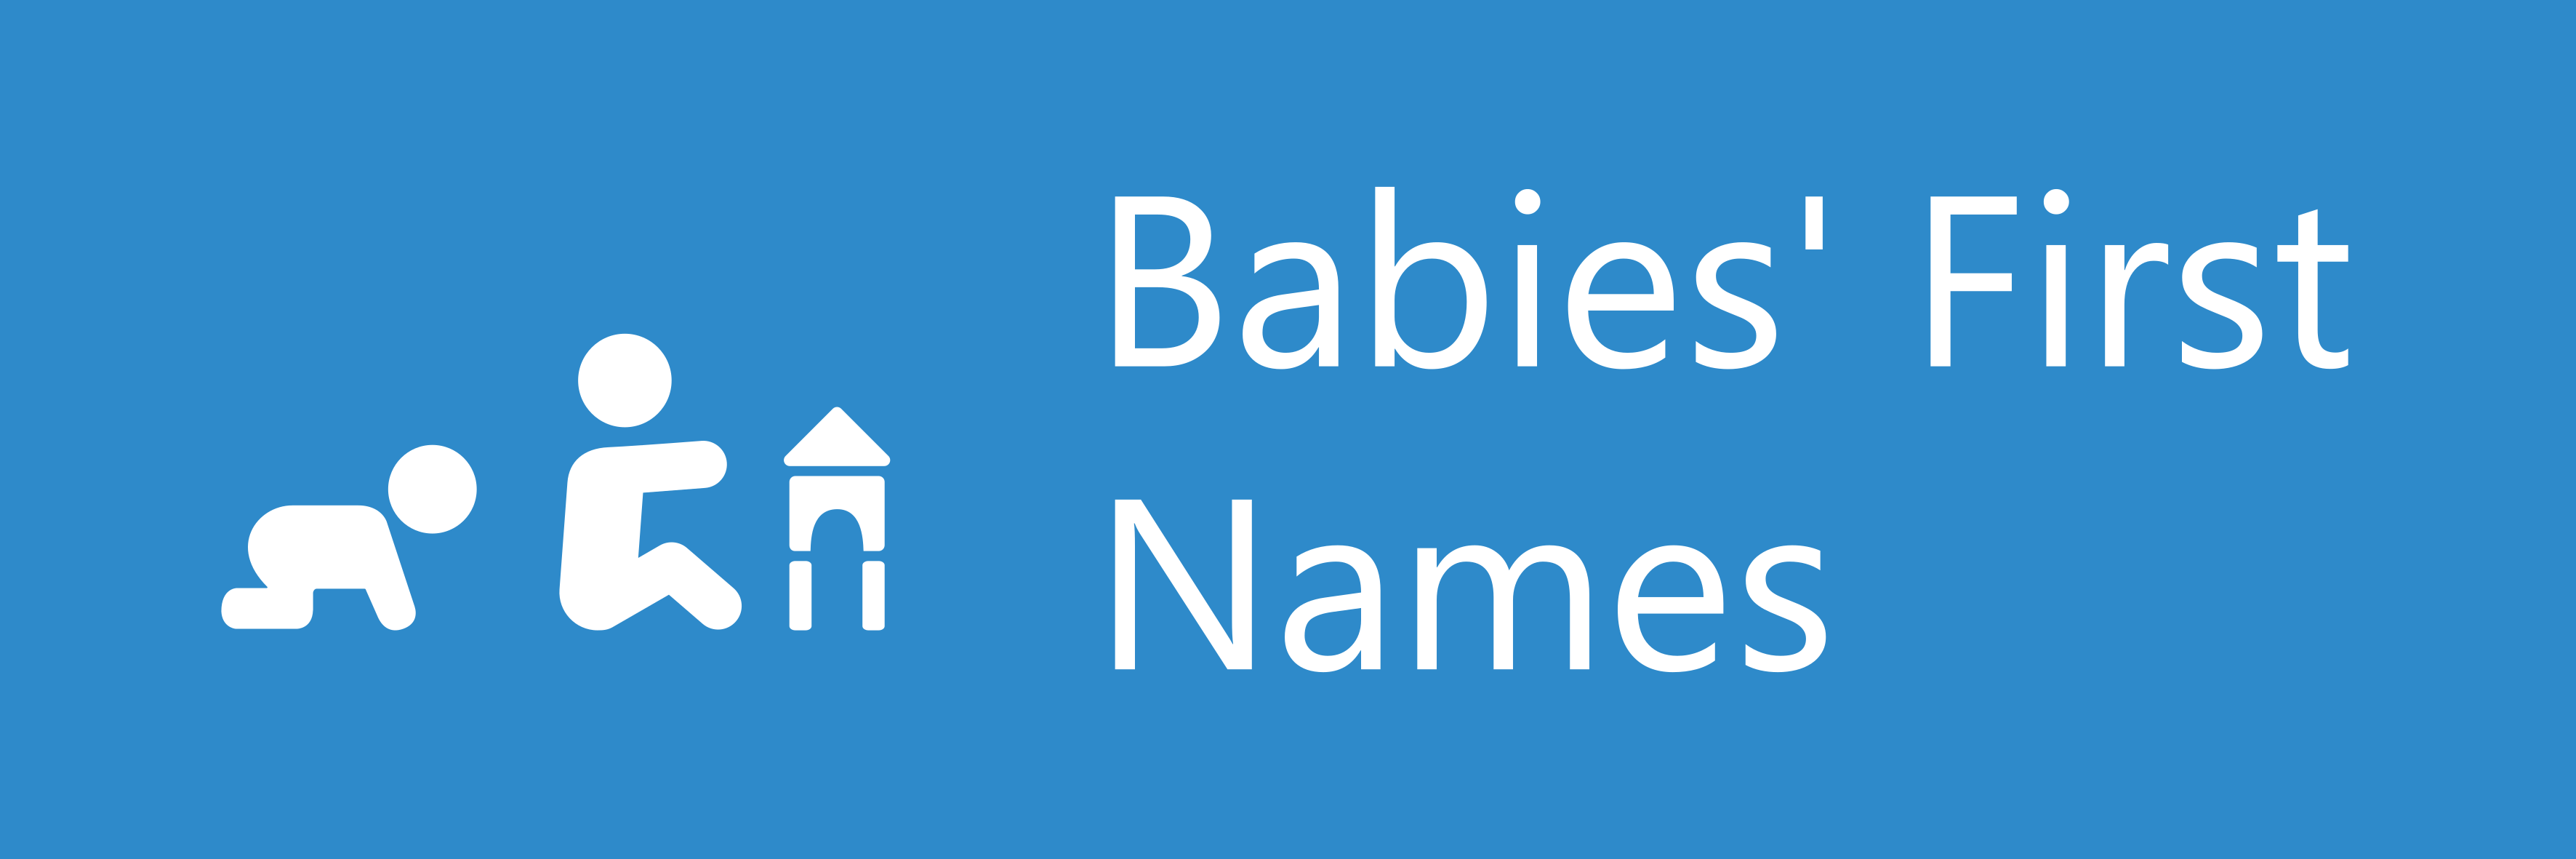 Babies' First Names 2018